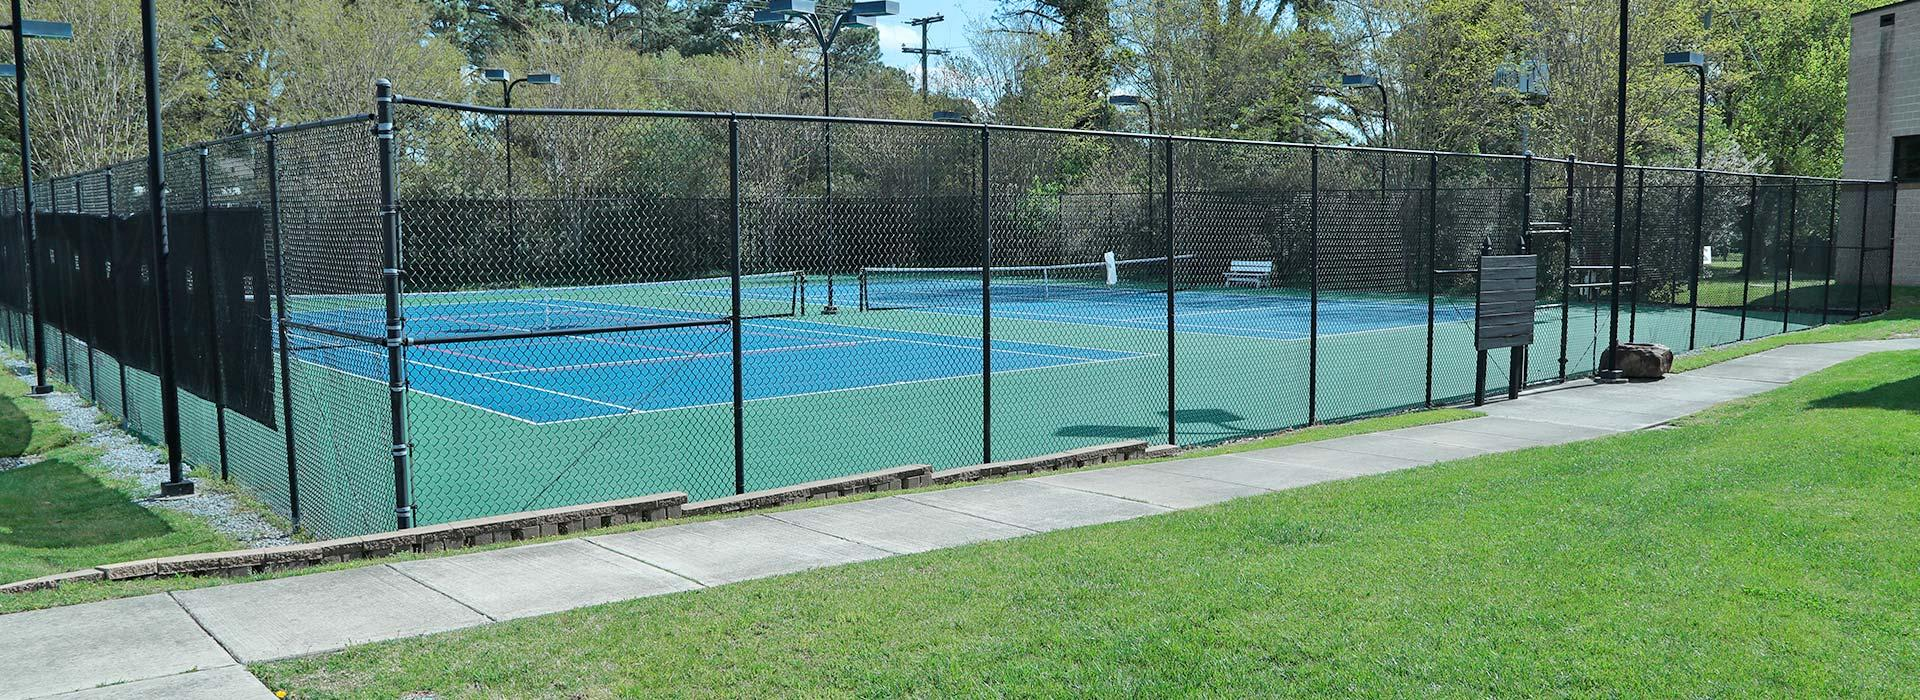 Outdoor tennis courts at the Portsmouth YMCA